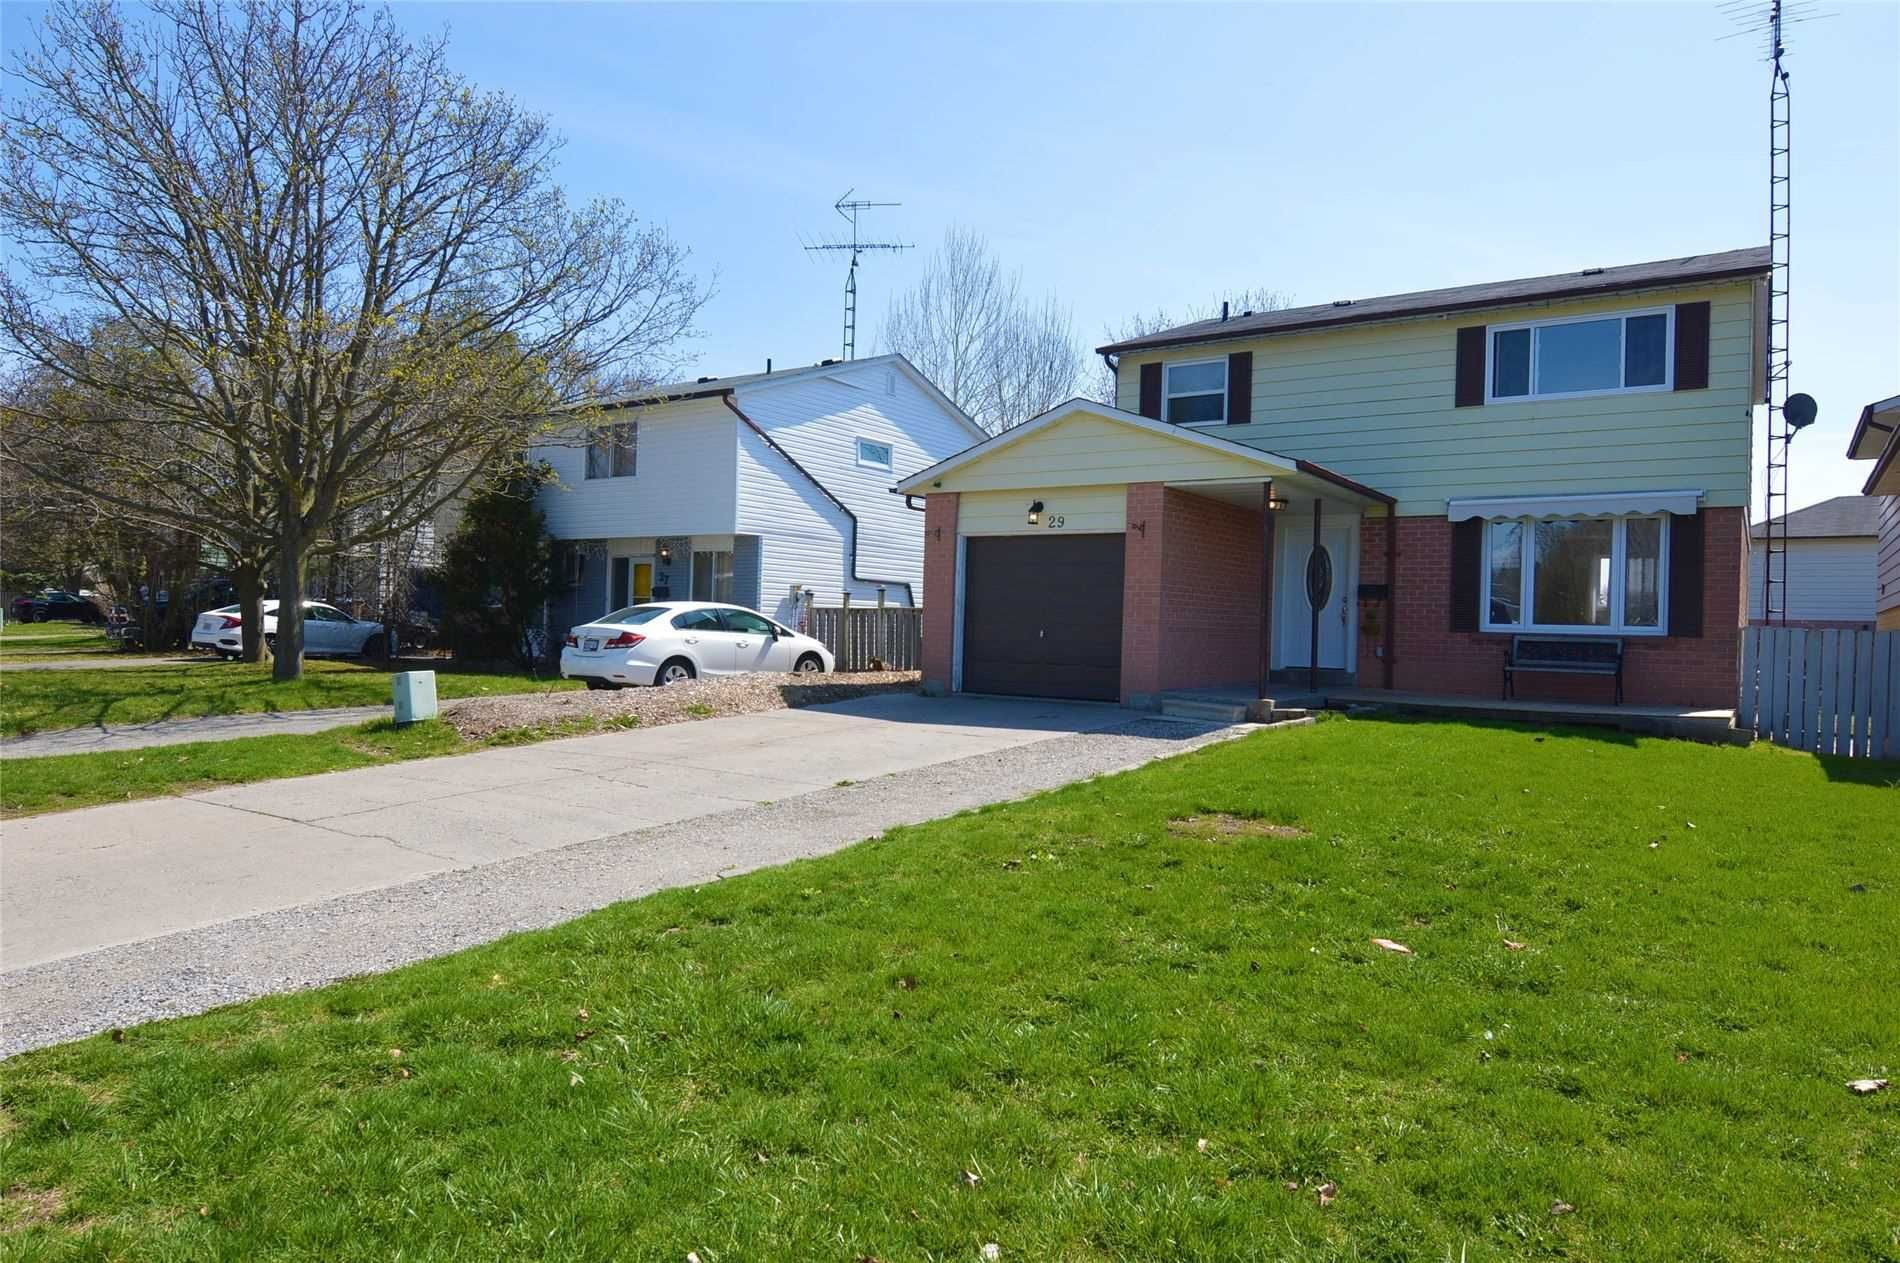 Main Photo: 29 Stanley Drive: Port Hope House (2-Storey) for sale : MLS®# X5201127